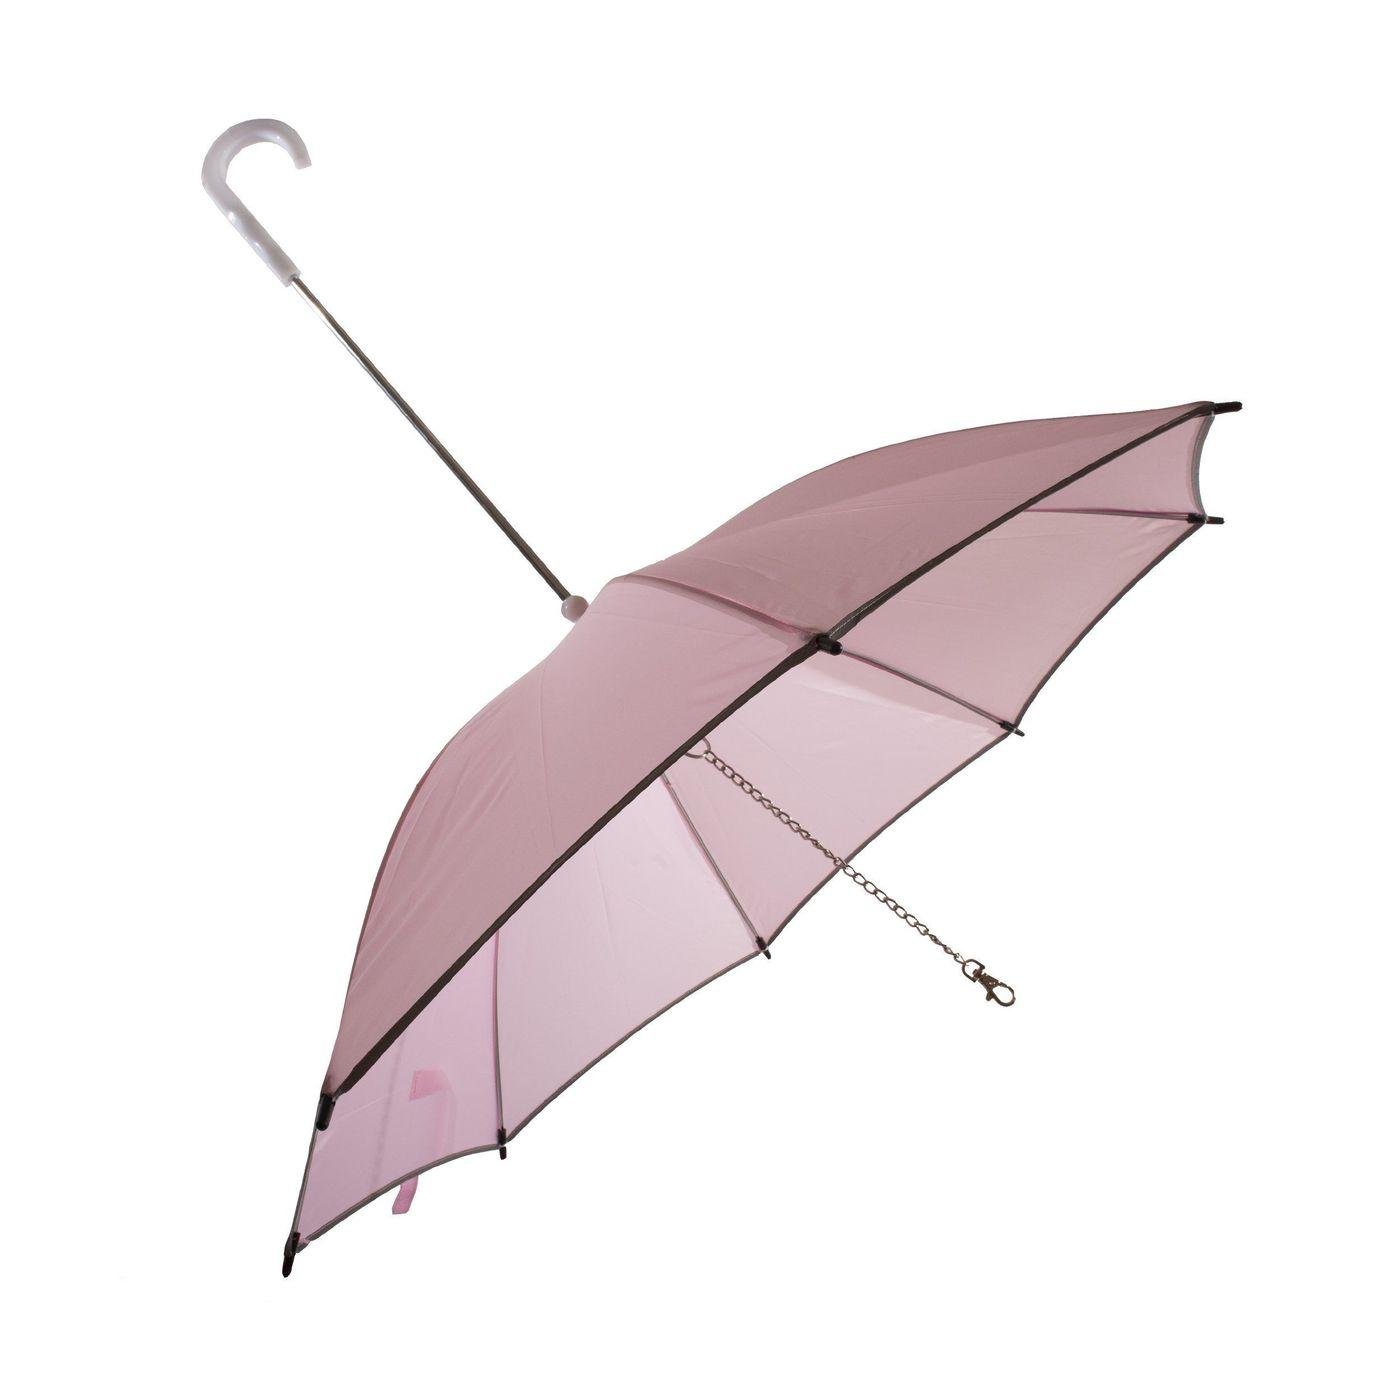 Pet Life 'Pour-Protection' Performance Dog Umbrella - Pink with White Handle